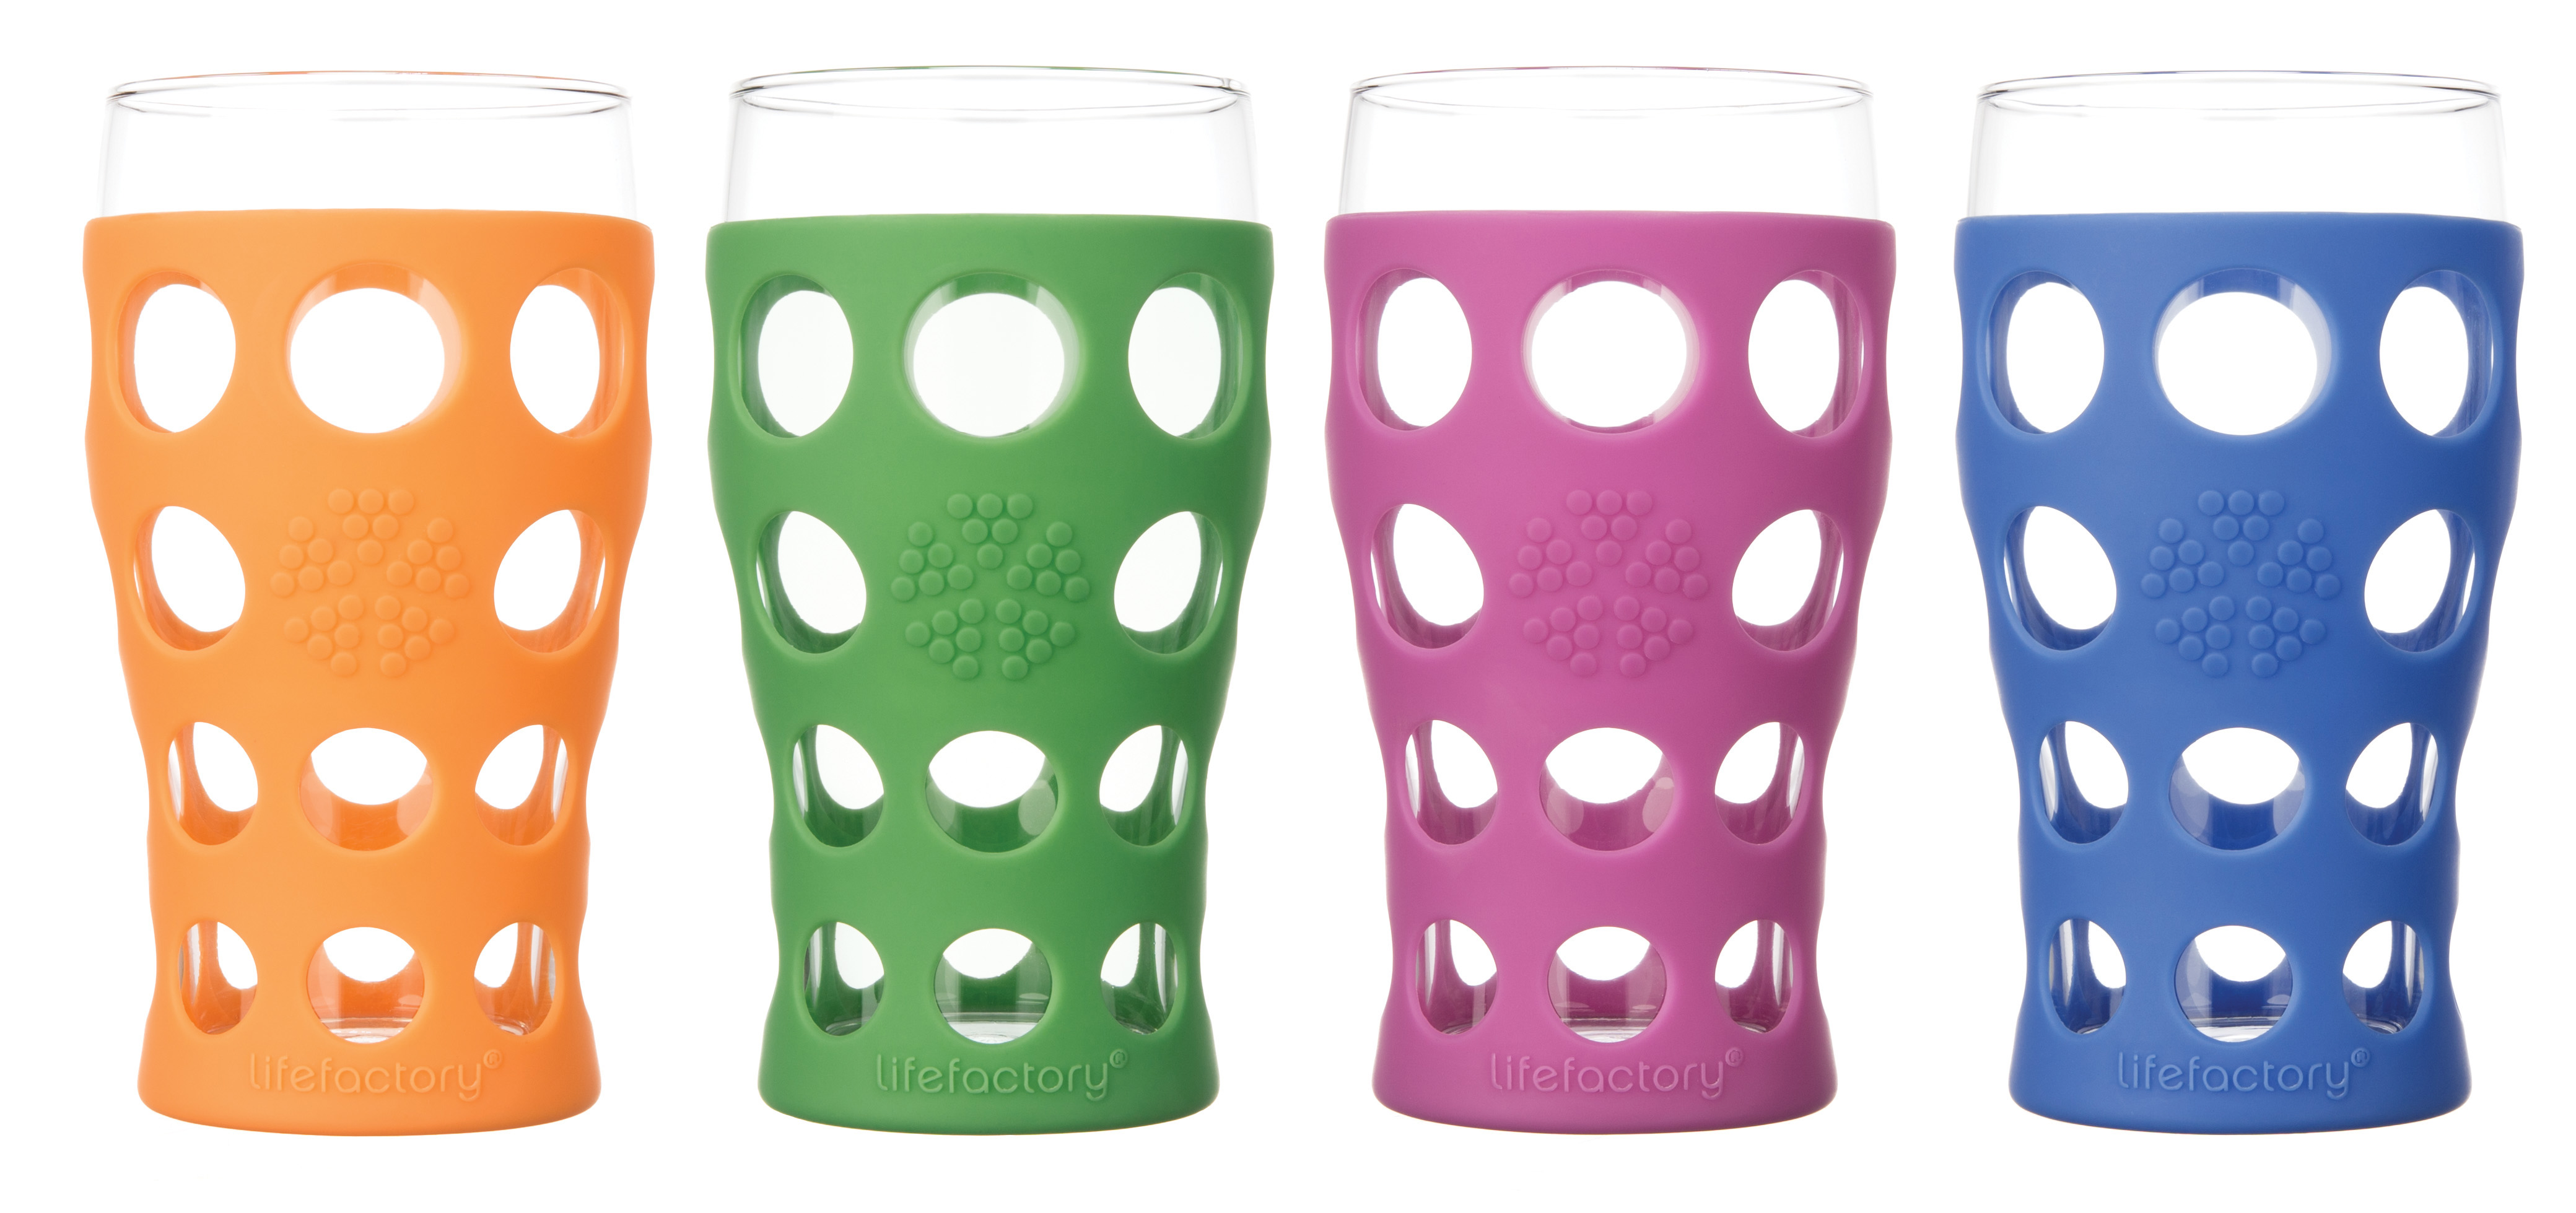 Lifefactory 20oz Beverage Glass - 4pk - Assorted